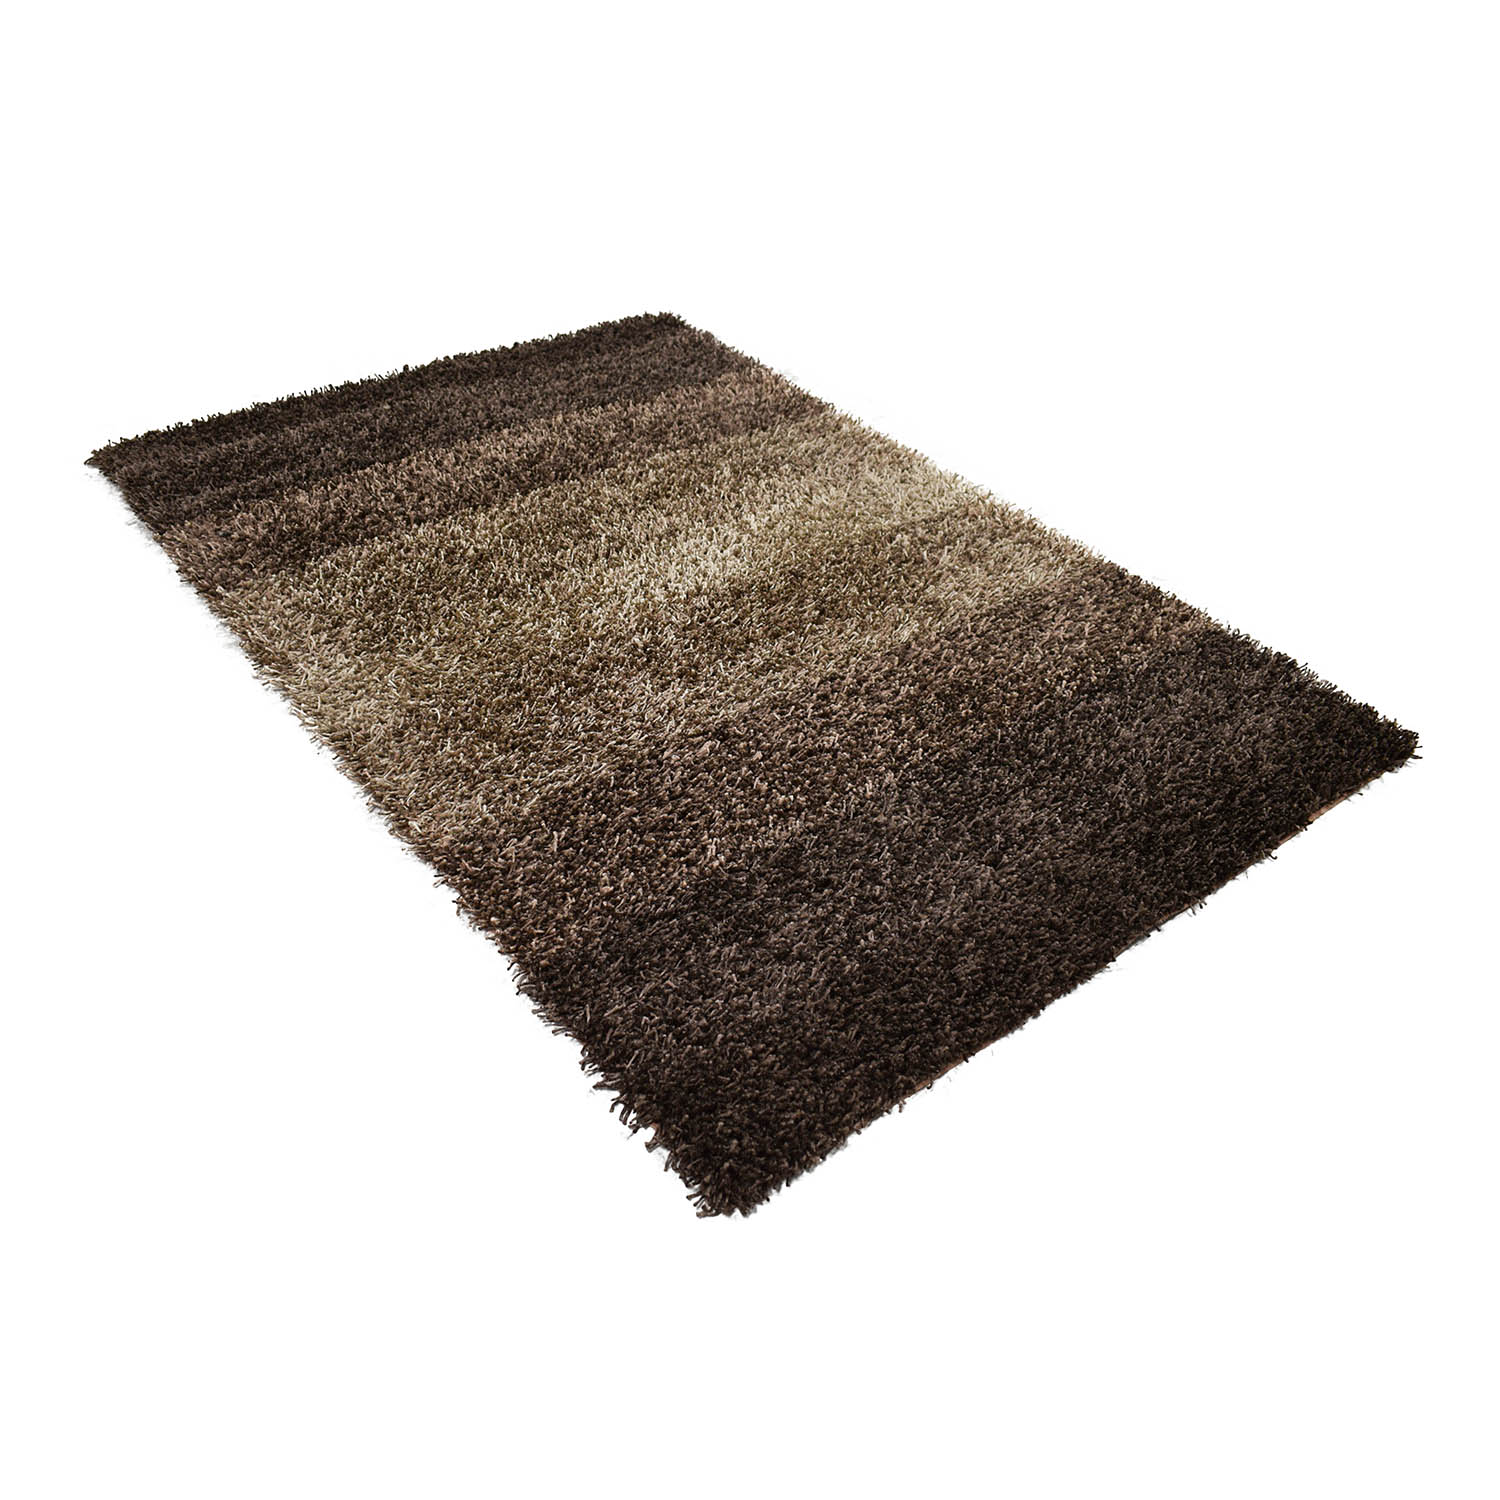 Spectrum Spectrum Brown Shag Rug on sale